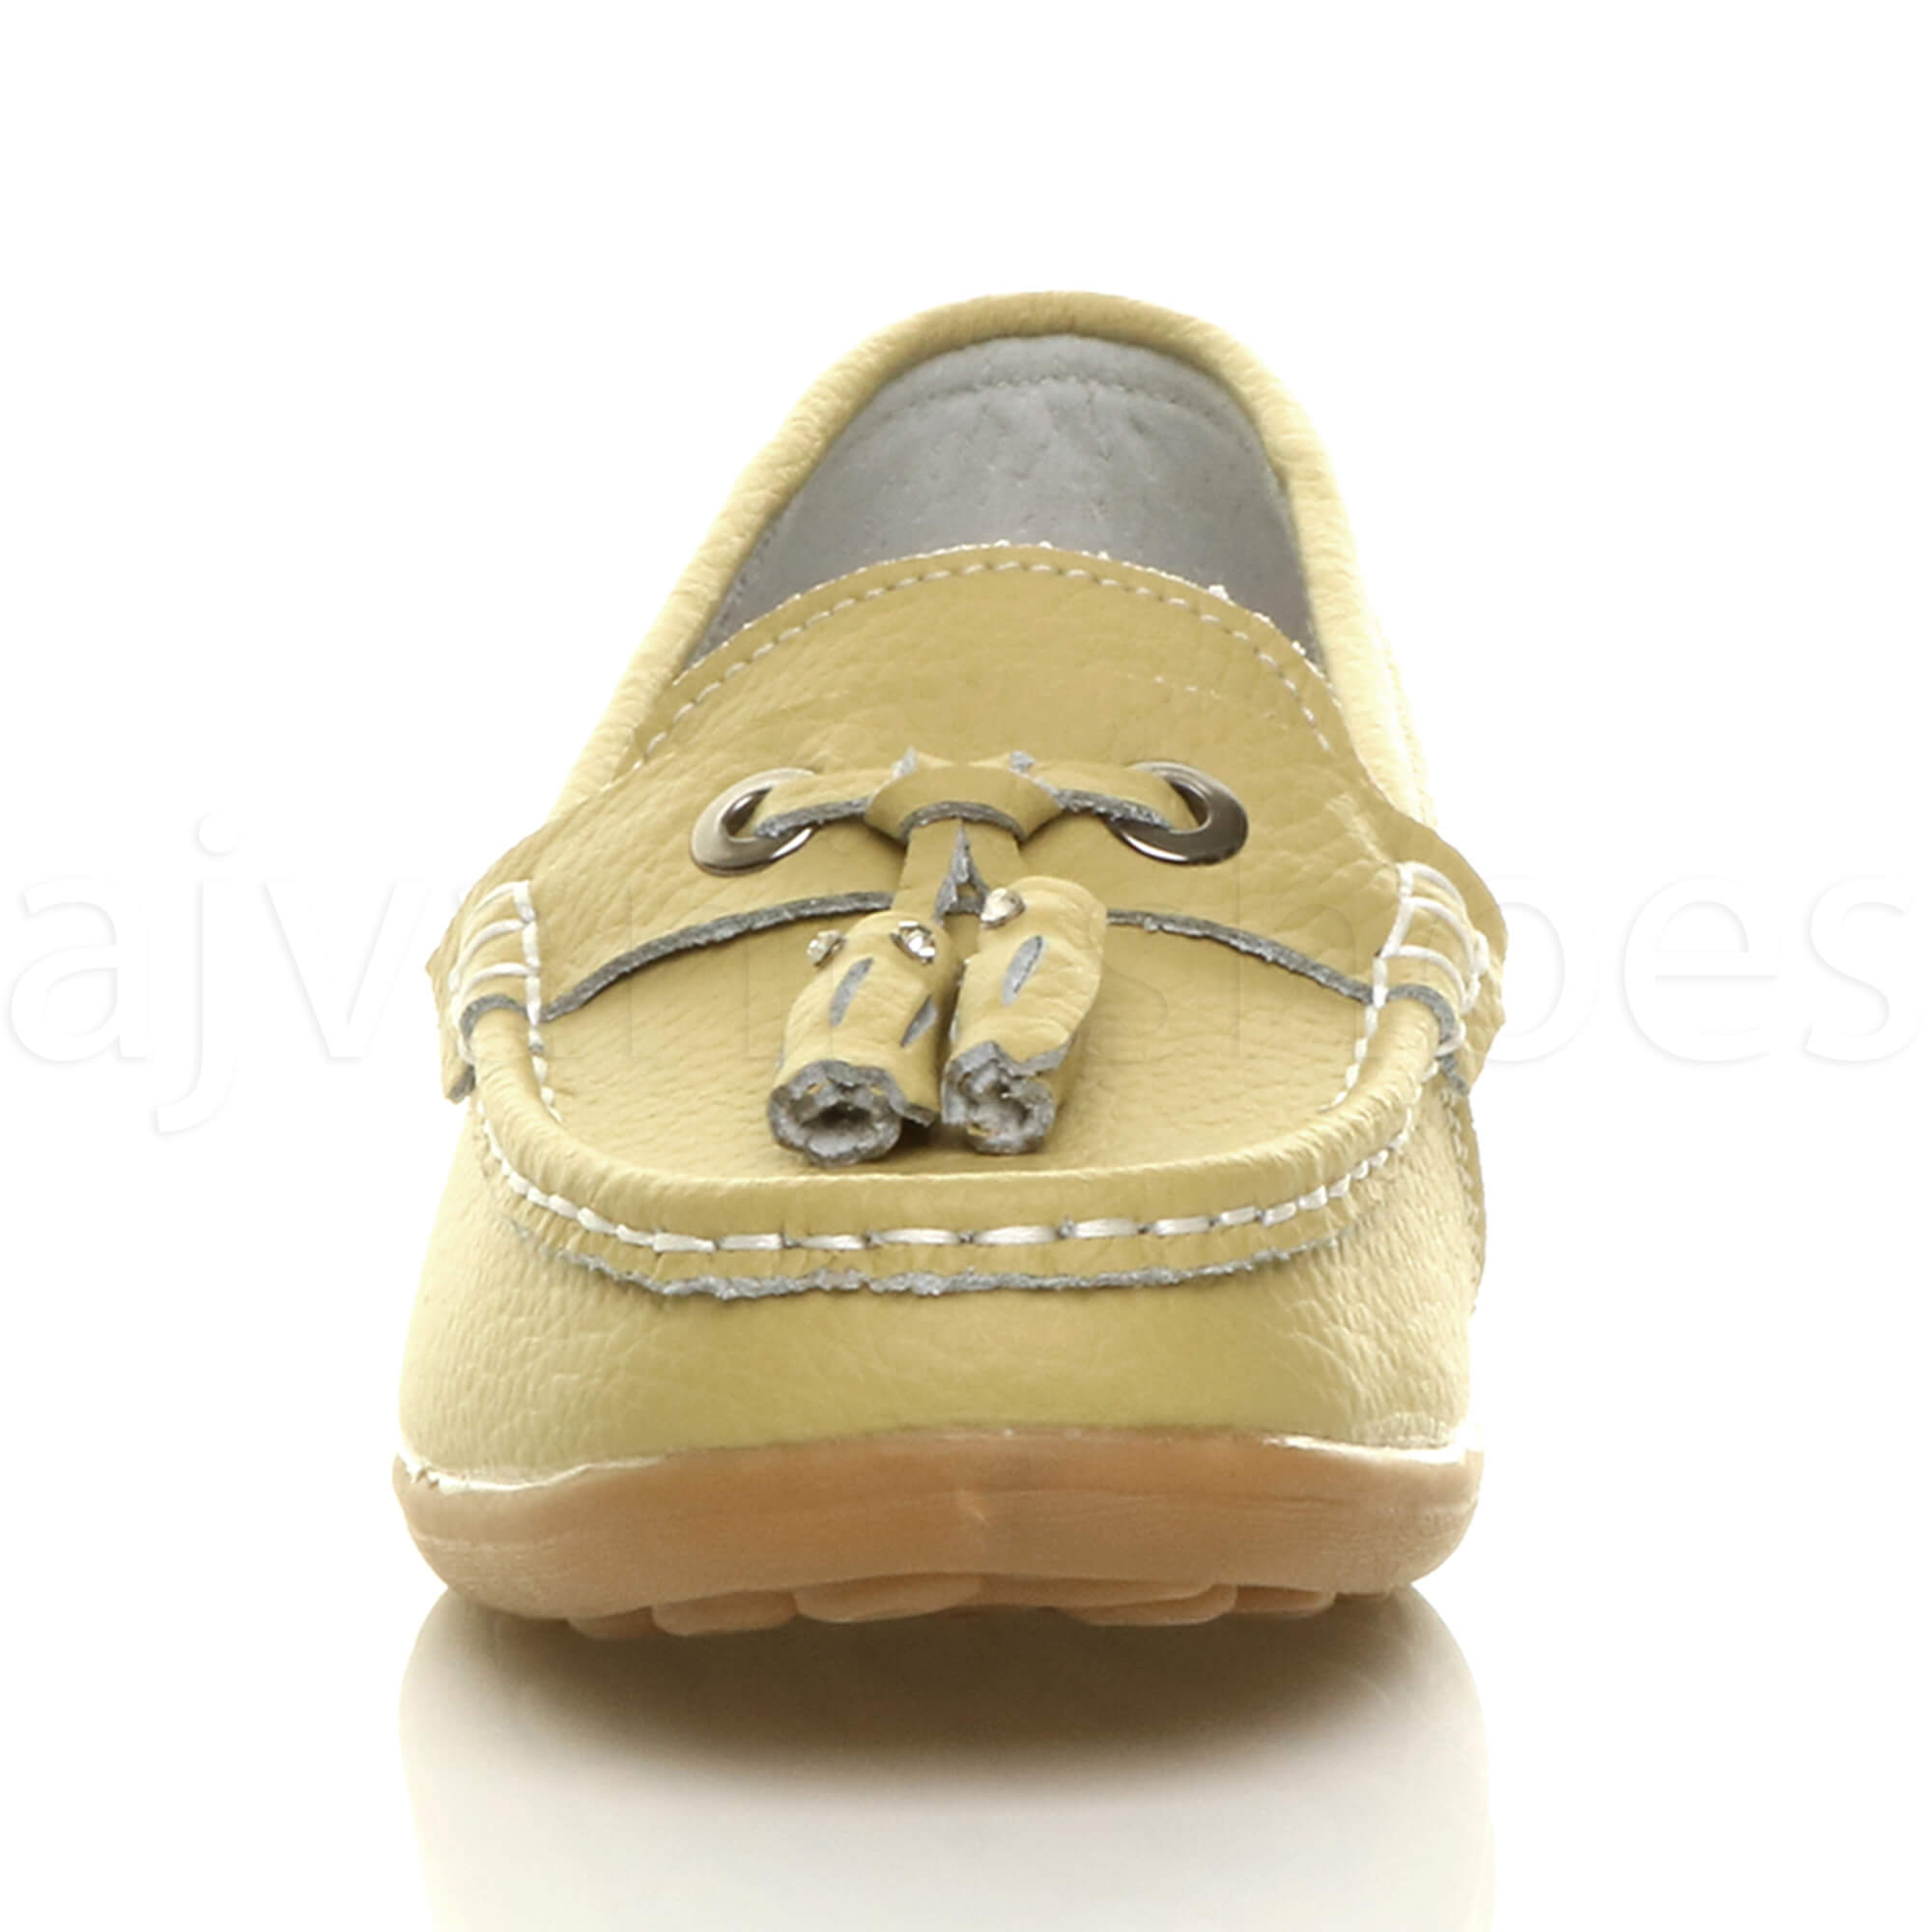 WOMENS-LADIES-LOW-HEEL-WEDGE-LEATHER-TASSEL-LOAFERS-COMFORT-MOCCASINS-SHOES-SIZE thumbnail 39